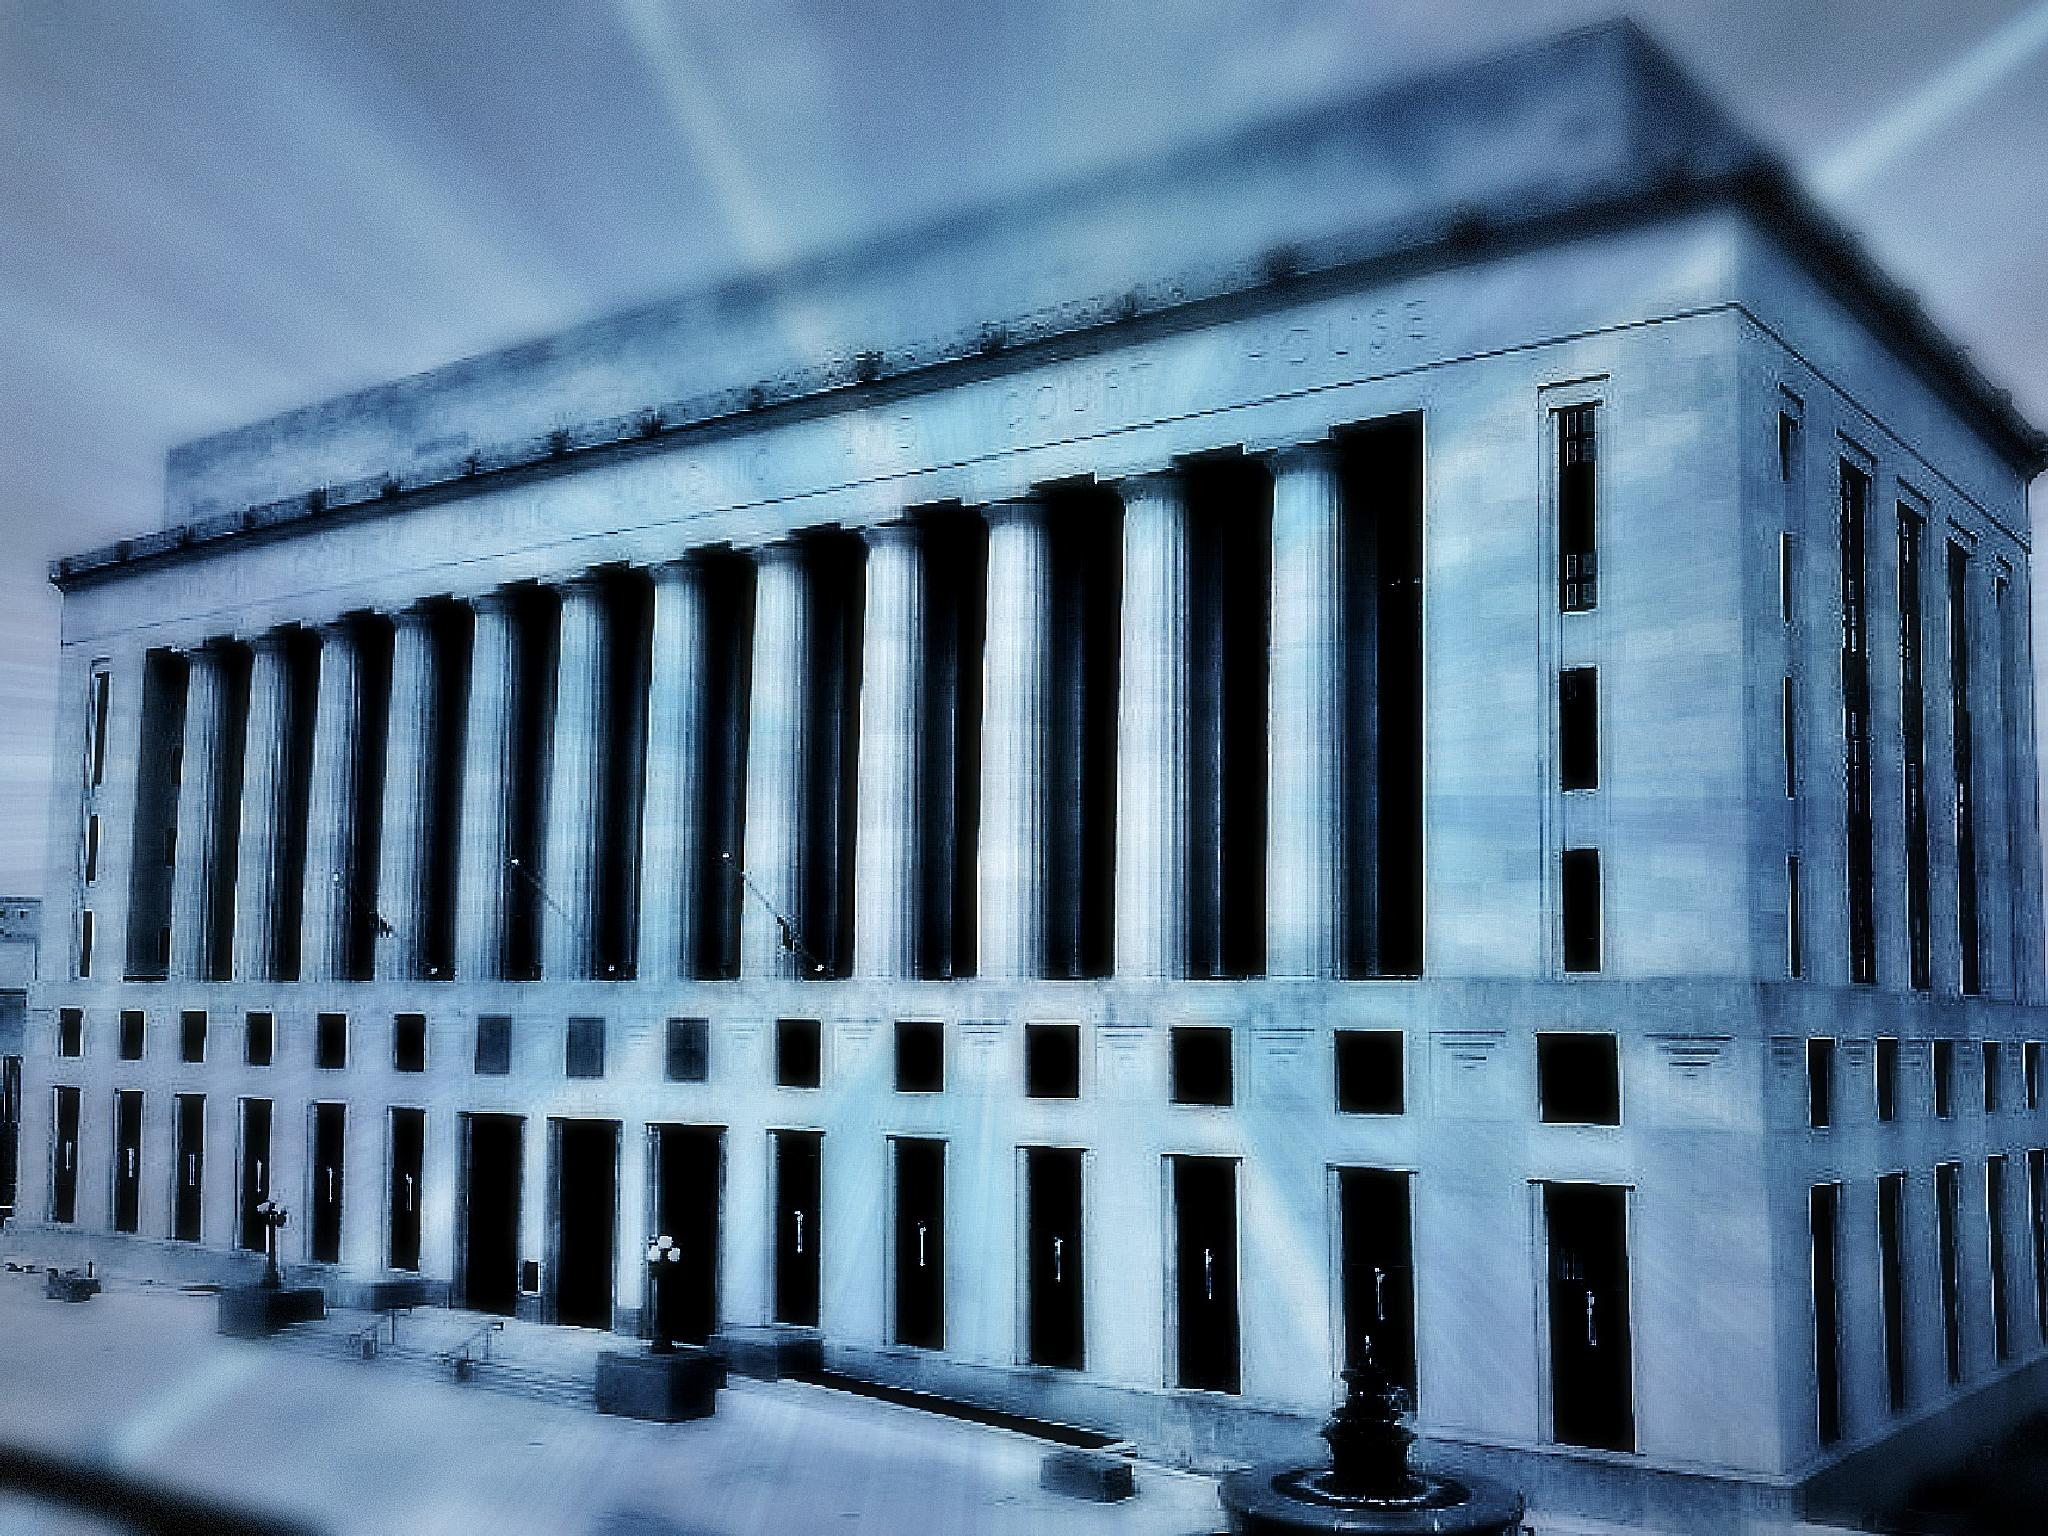 Courthouse @ Nashville, TN by marie.short.18